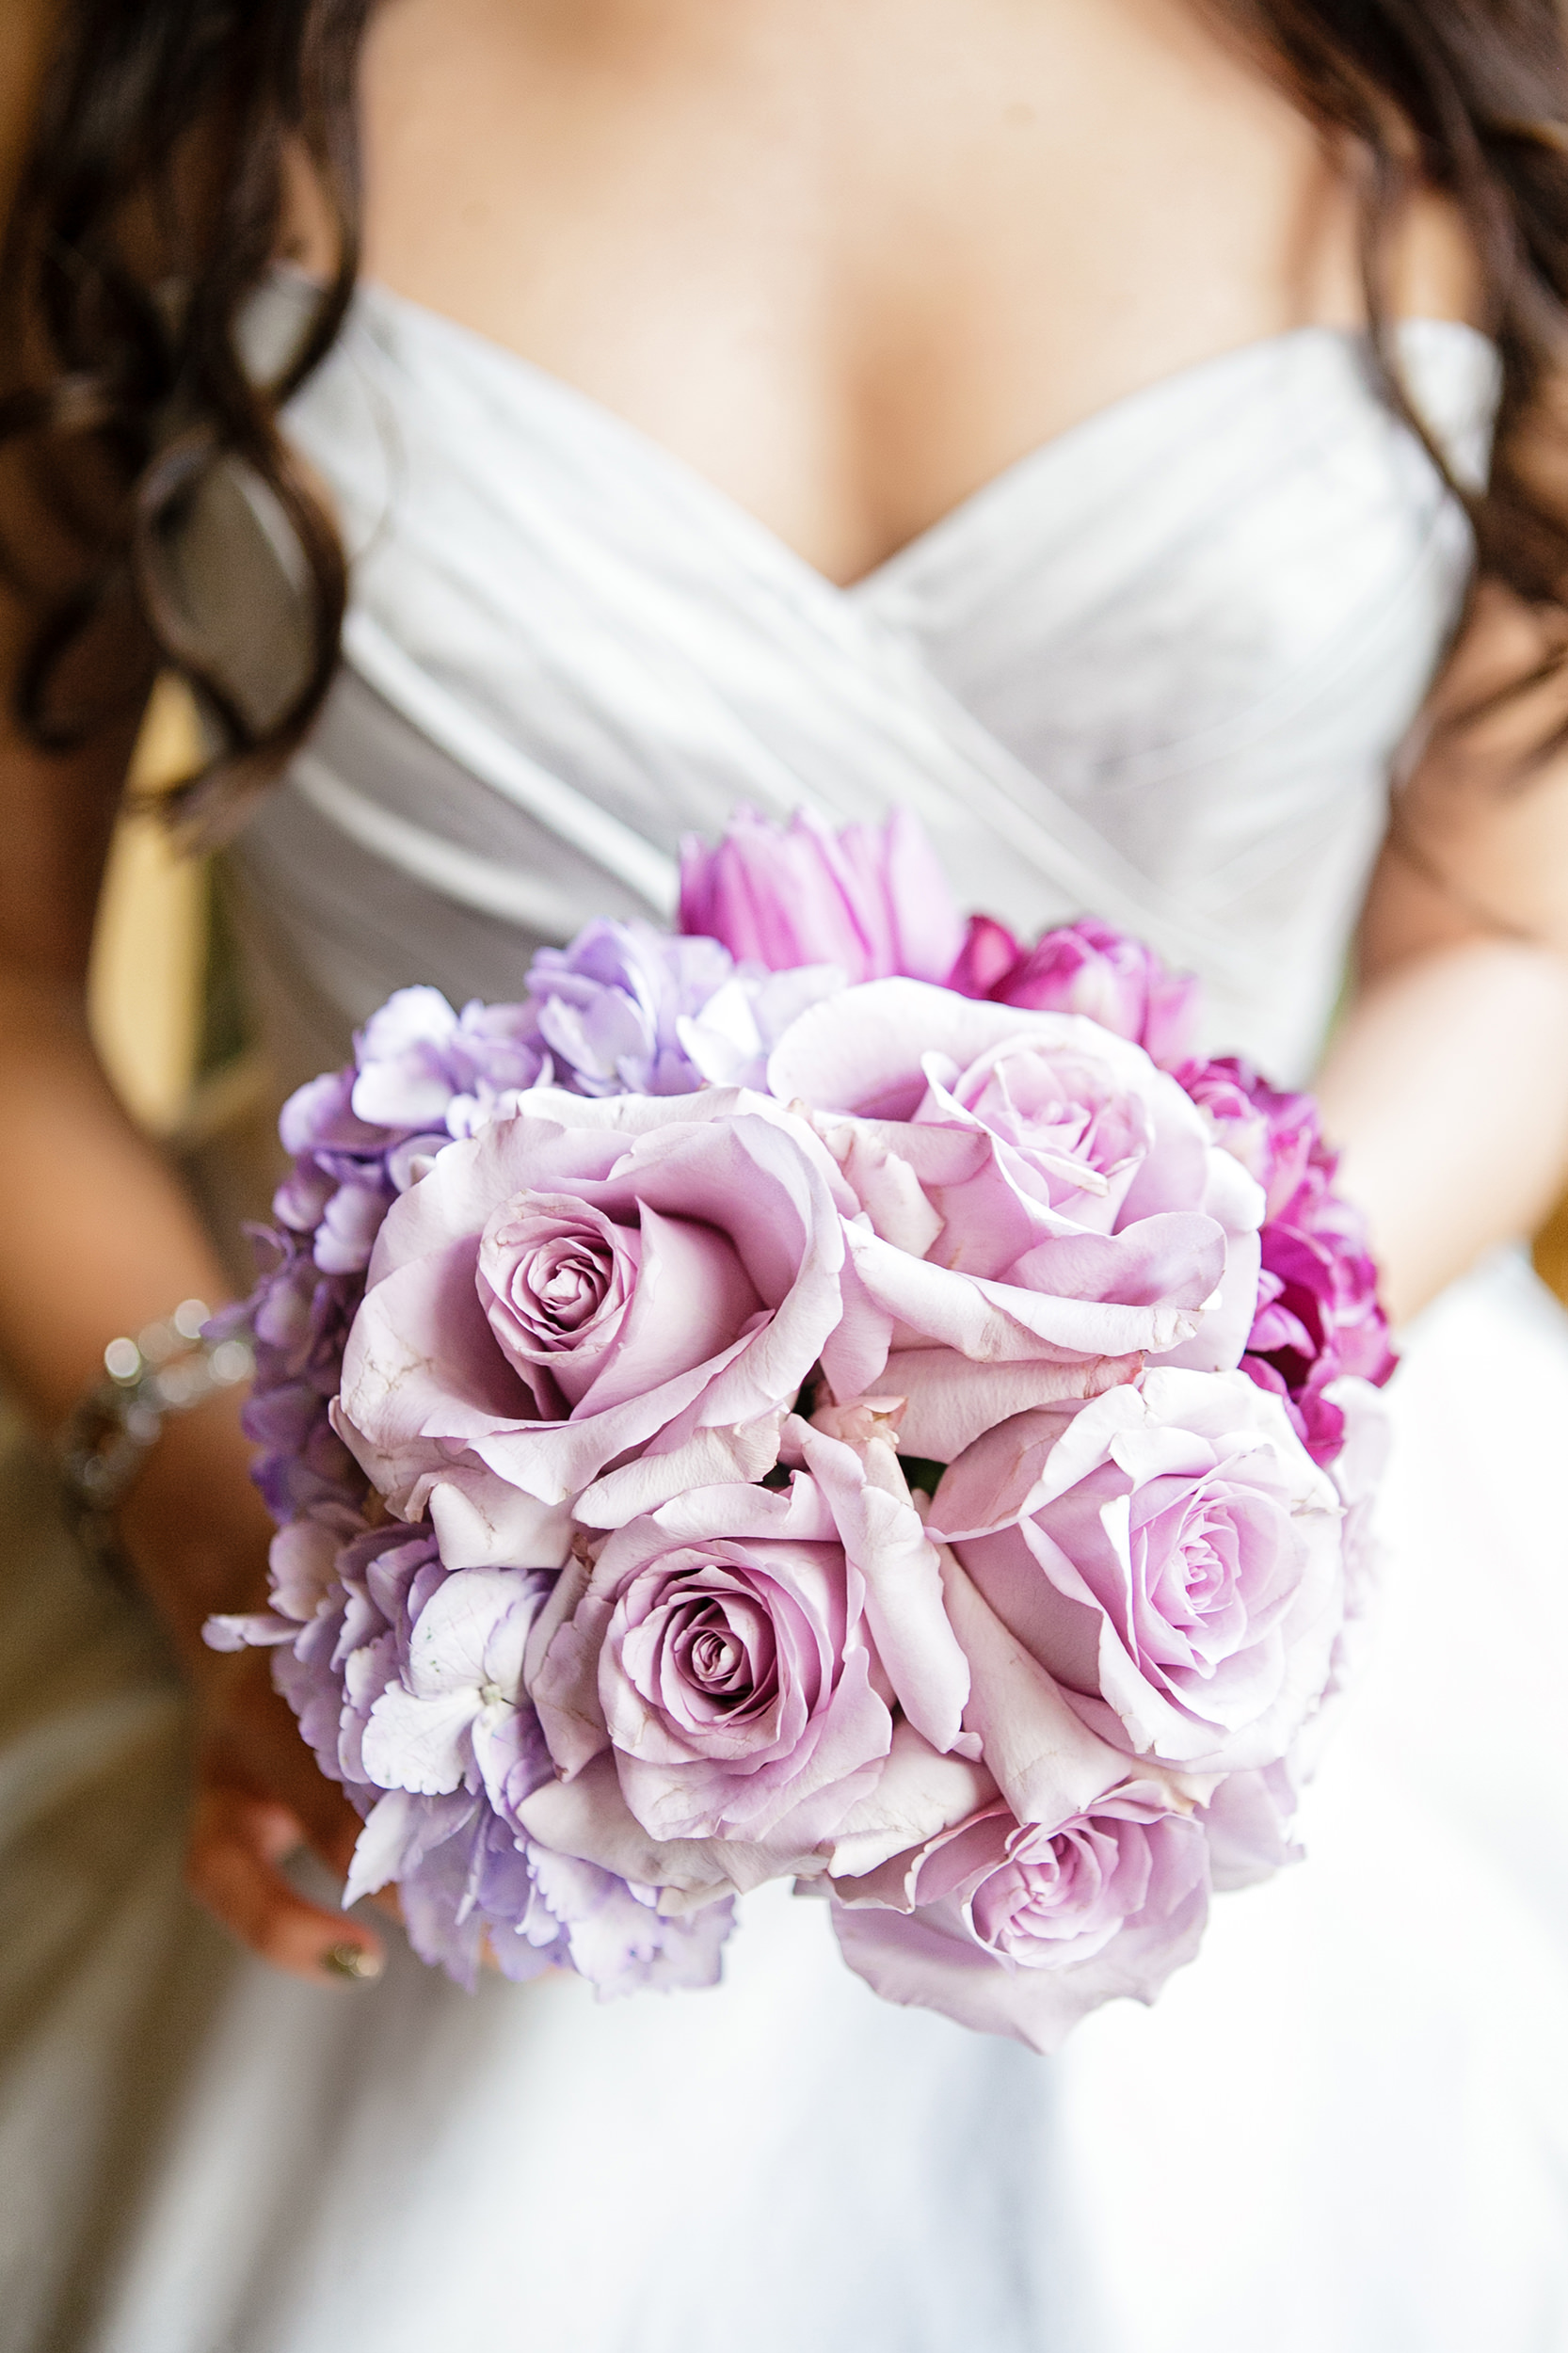 16 Ombre Lavender Purple Bouquet Roses Philadelphia Wedding Florist.jpg